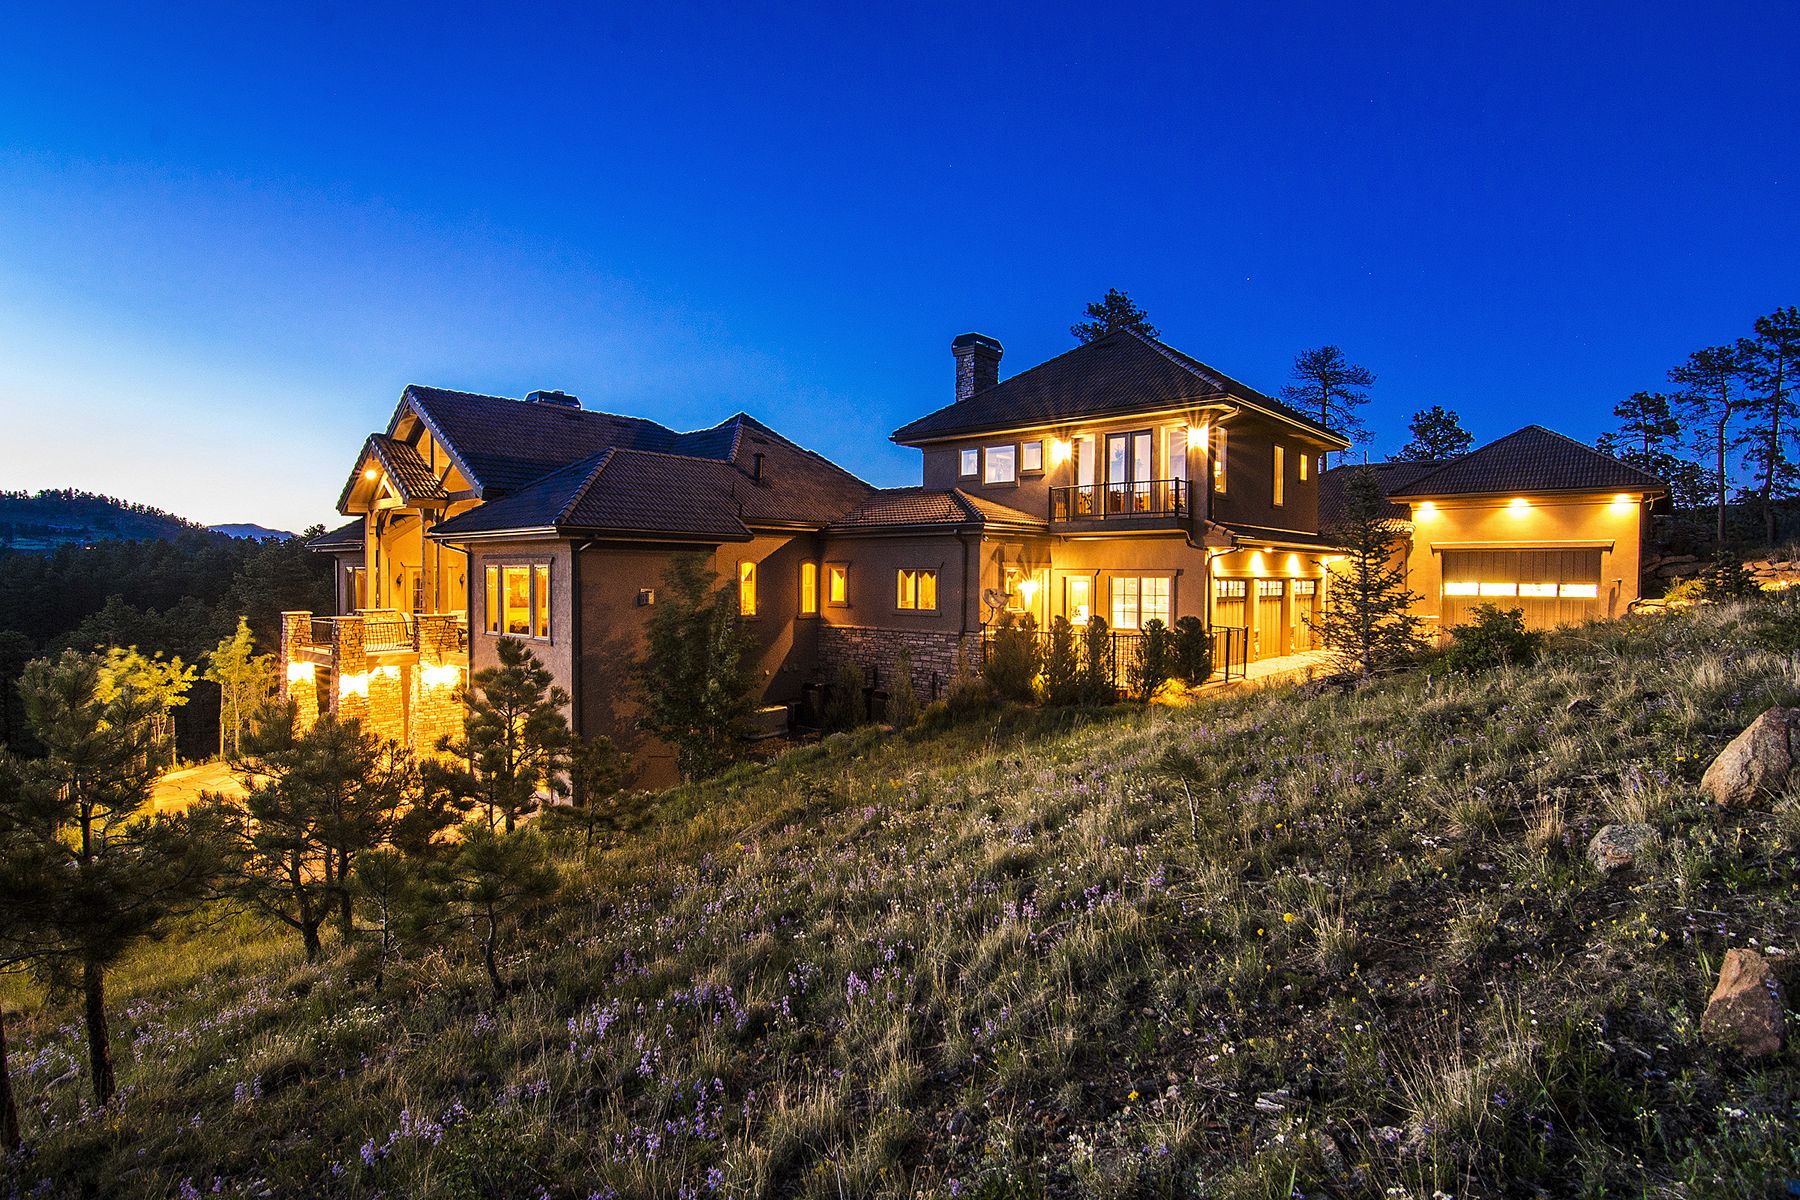 Single Family Home for Sale at Custom Home With Incredible Views 1325 Silver Rock Lane Evergreen, Colorado, 80439 United States